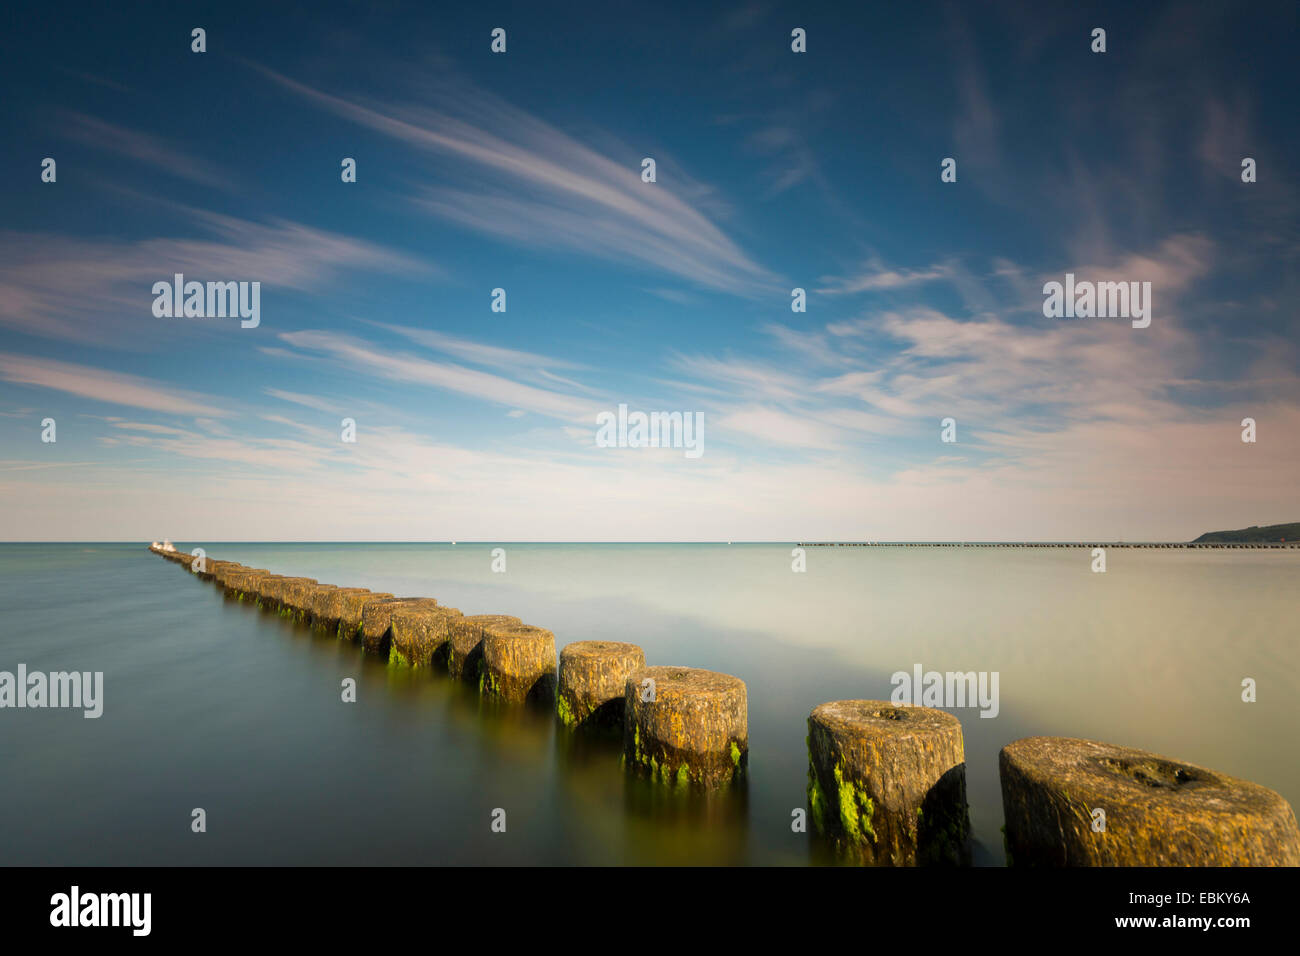 spur dike in morning light, longtime exposure, Germany, Mecklenburg-Western Pomerania, Hiddensee - Stock Image